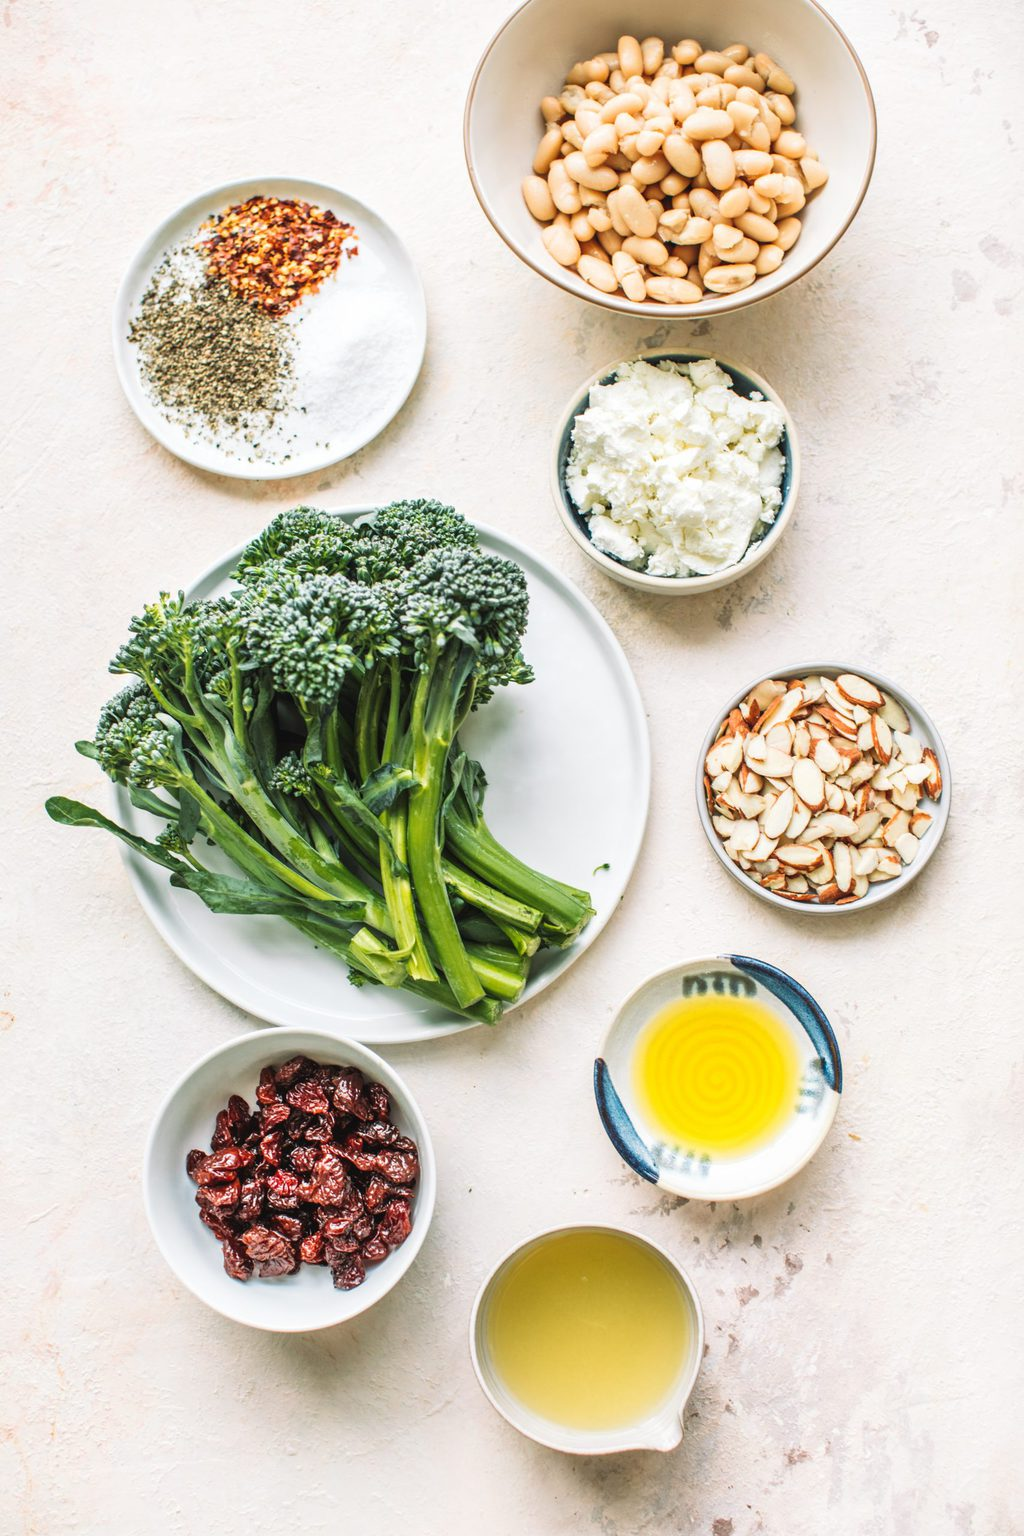 Top shot of broccoli, white beans, almonds, cranberries and other ingredients laid out on countertop.